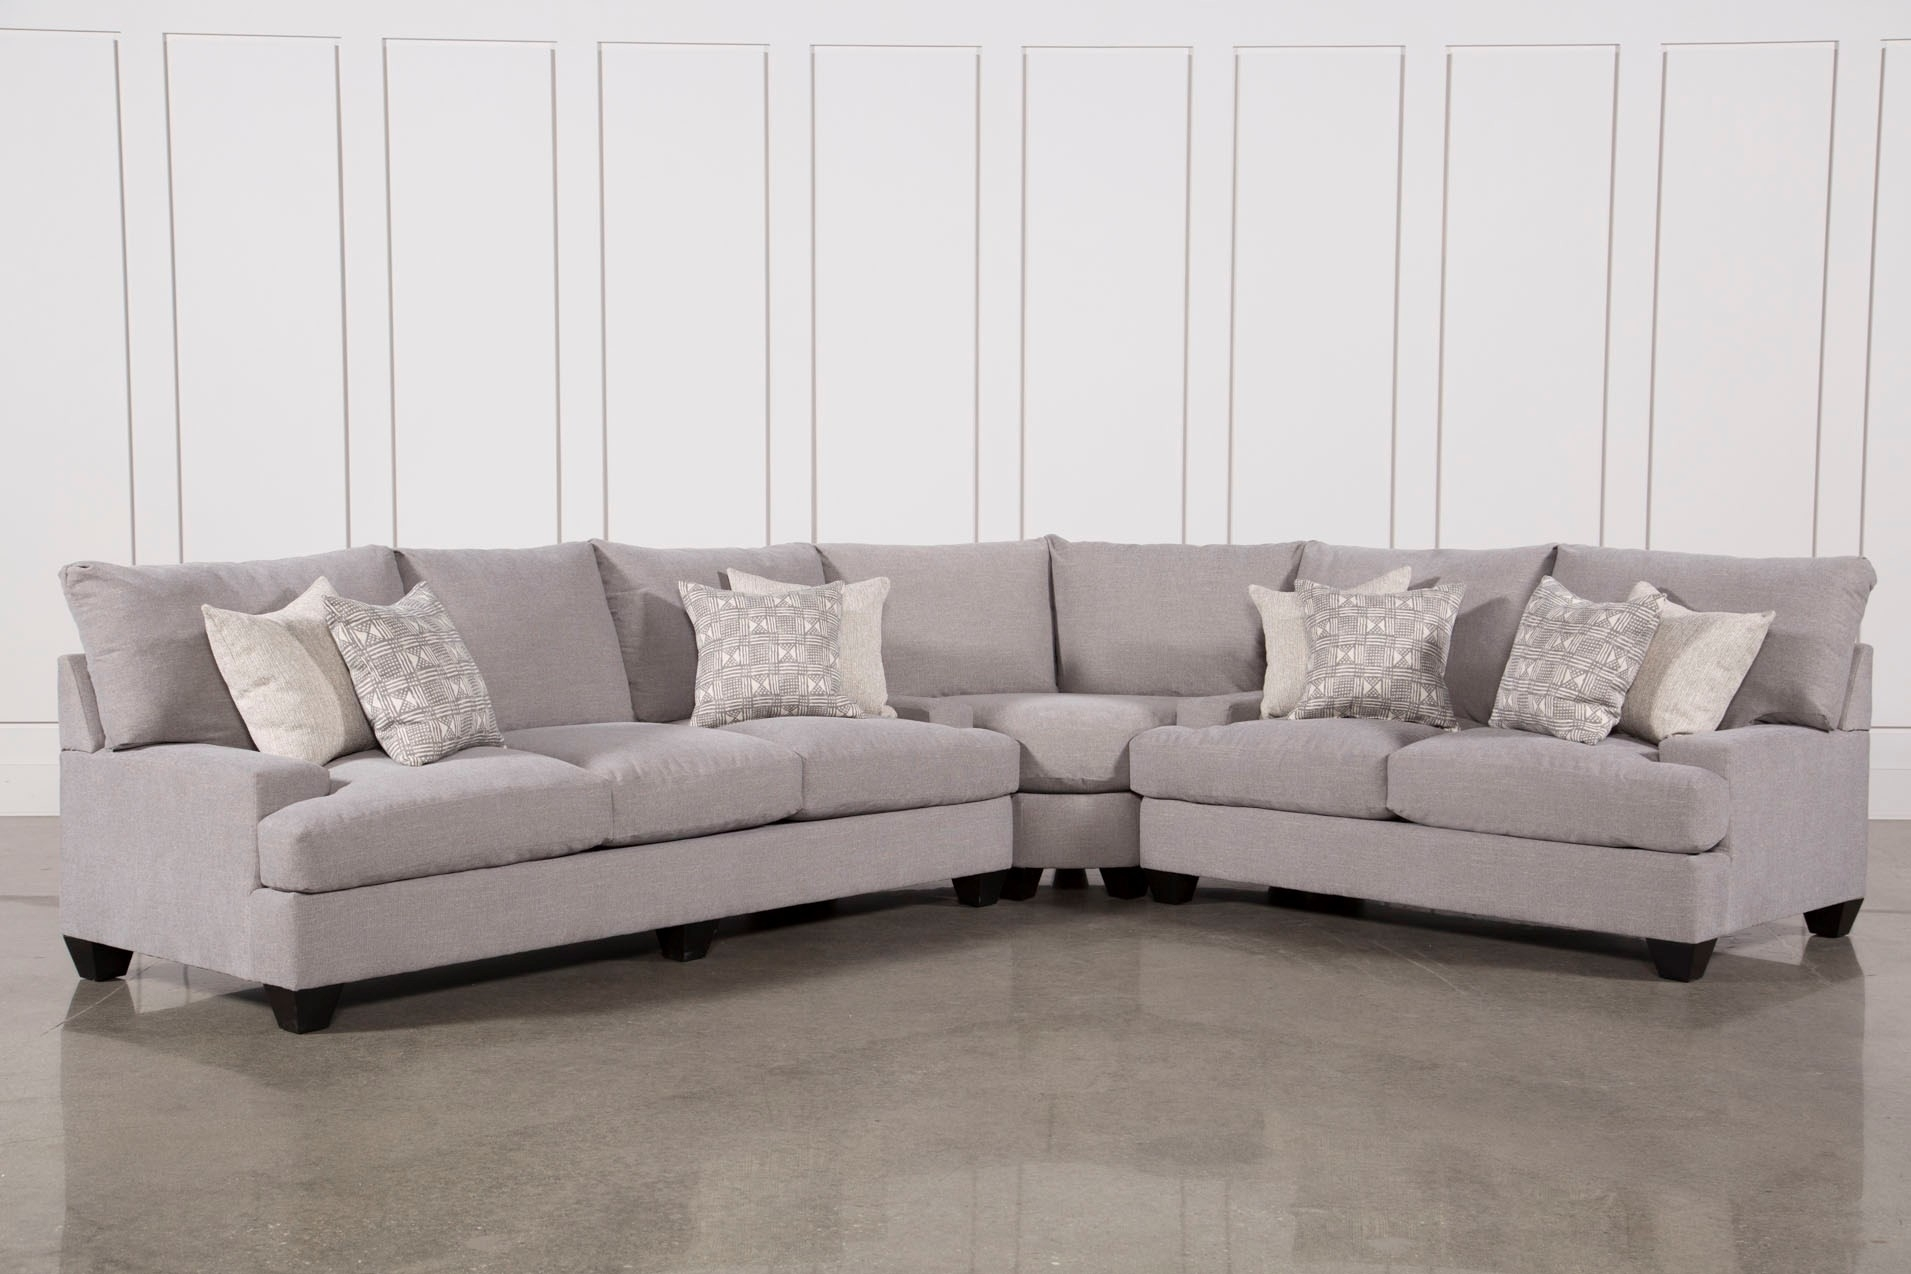 Living Spaces Sectional Cosmos Grey 2 Piece W Raf Chaise 206402 0 Throughout Cosmos Grey 2 Piece Sectionals With Laf Chaise (Image 14 of 25)